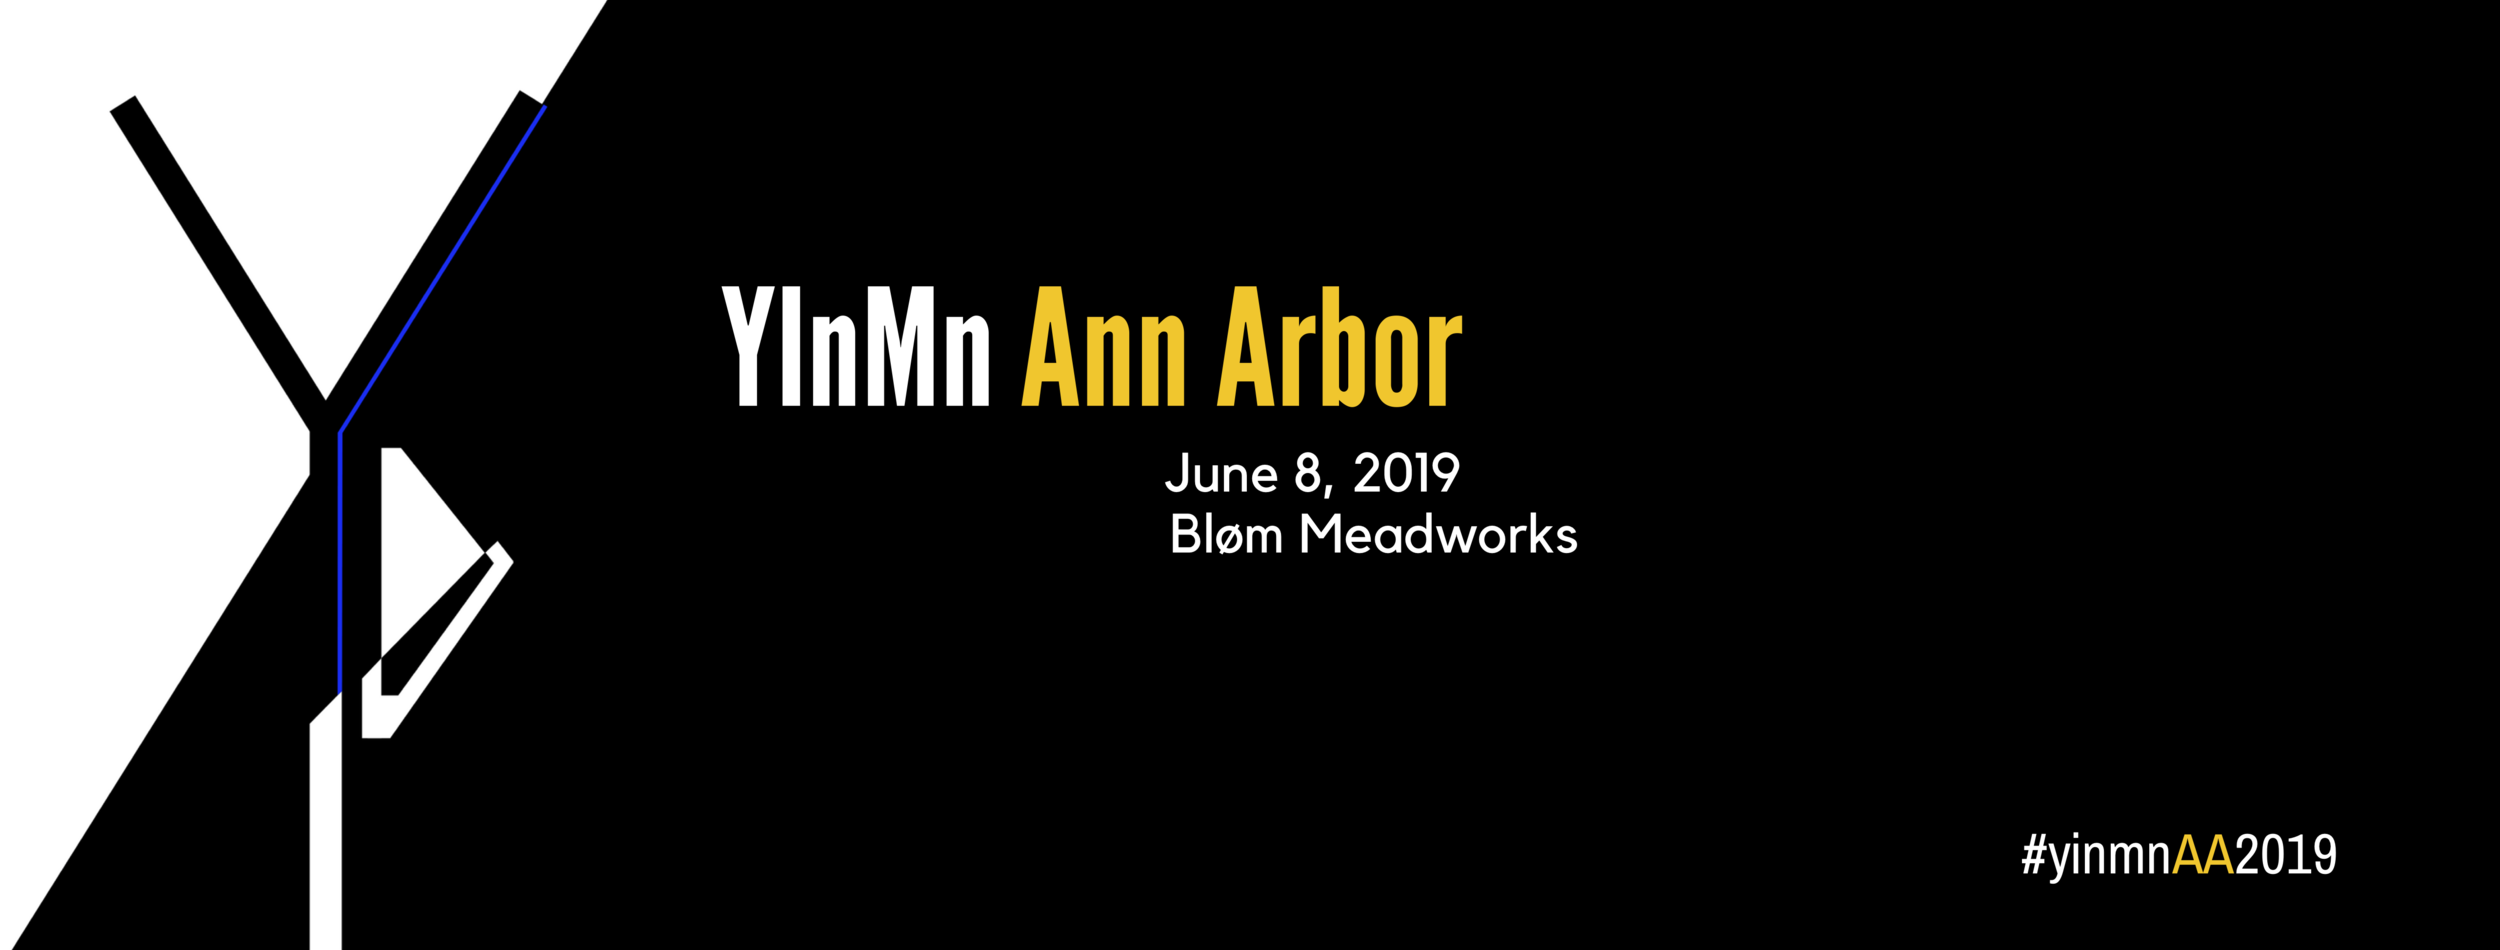 Ann Arbor's inaugural YInMn Project will be hosted by Bløm Meadworks on Saturday, June 8, 2019